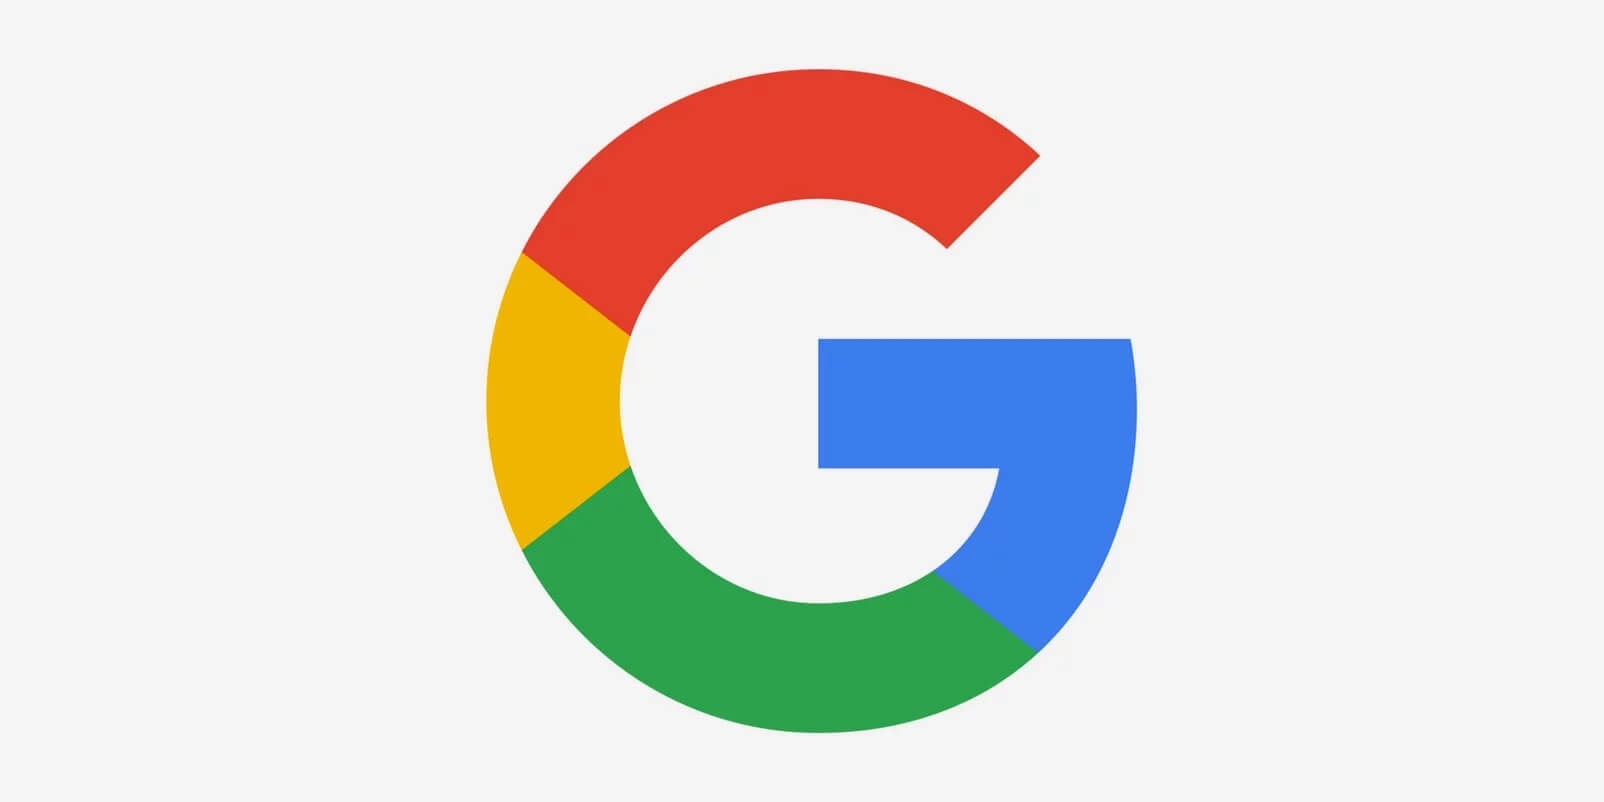 The Indexing Bug has been resolved by GOOGLE